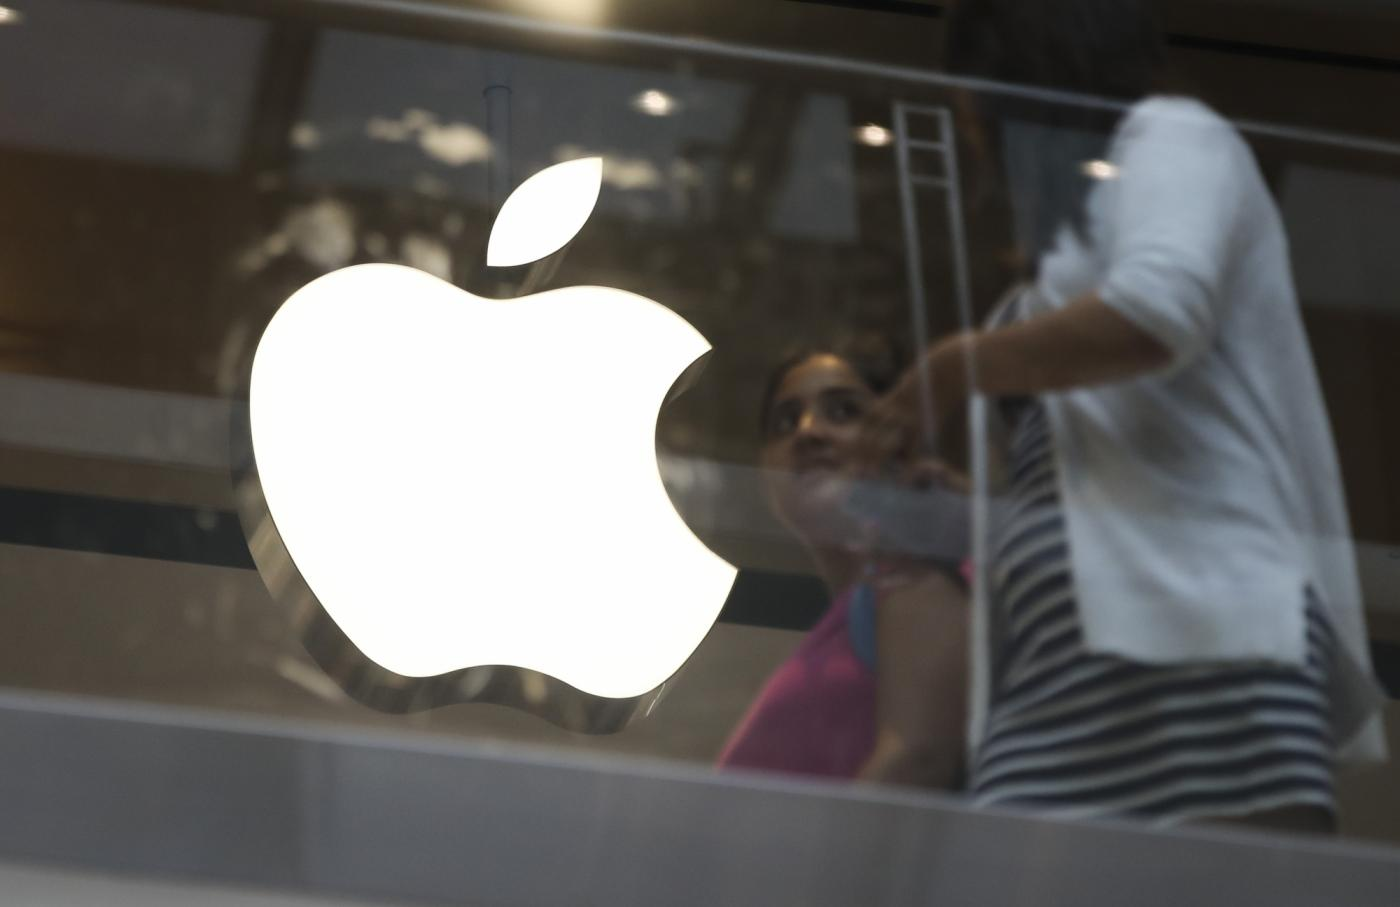 NEW YORK, Aug. 2, 2018 (Xinhua) -- People walk past an Apple store in New York, the United States, Aug. 2, 2018. U.S. tech giant Apple became the first American company that saw its market cap hit 1 trillion U.S. dollars in the U.S. history after its shares rose 2.8 percent to a session high of 207.05 dollars around midday trading on Thursday. (Xinhua/Wang Ying/IANS) by .